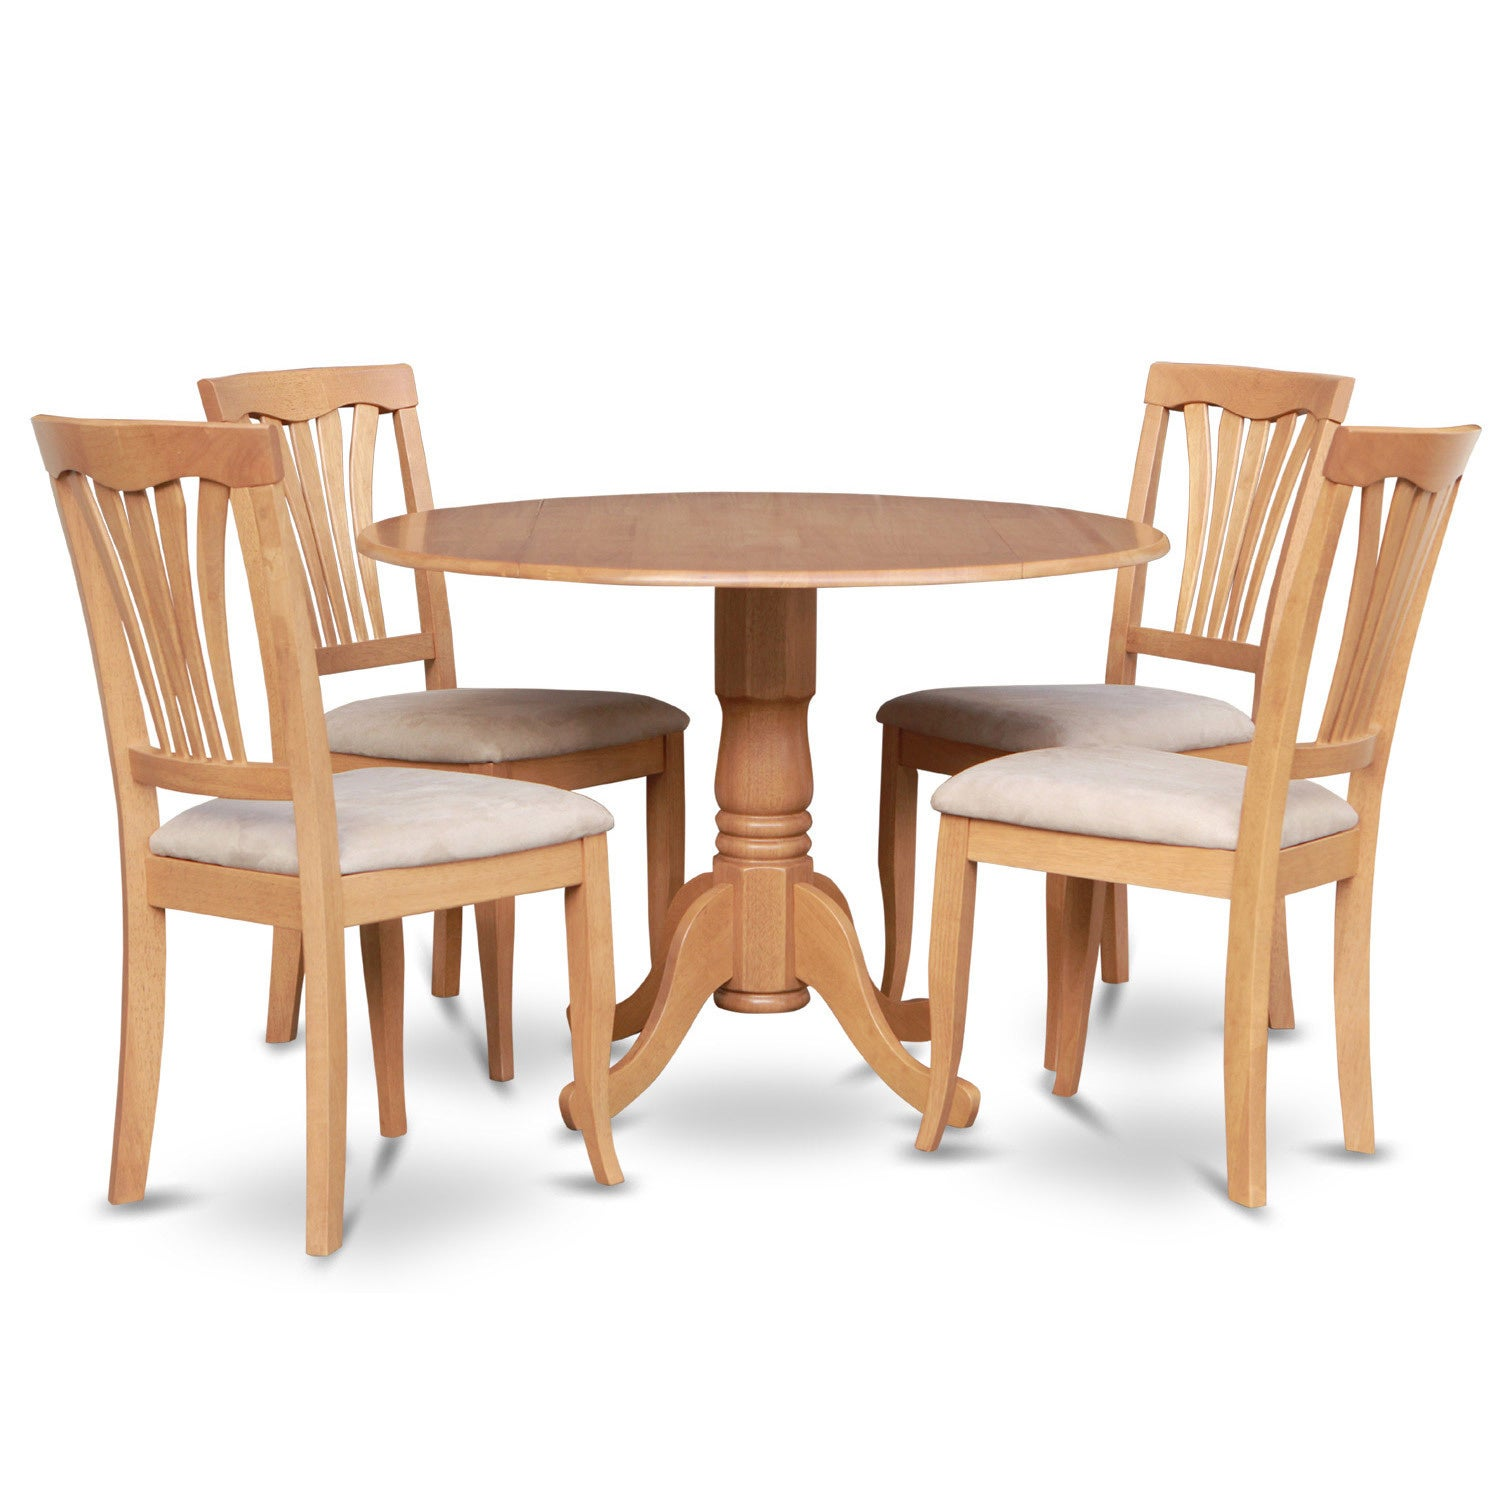 Oak Round Kitchen Table And 4 Kitchen Chairs 5-piece